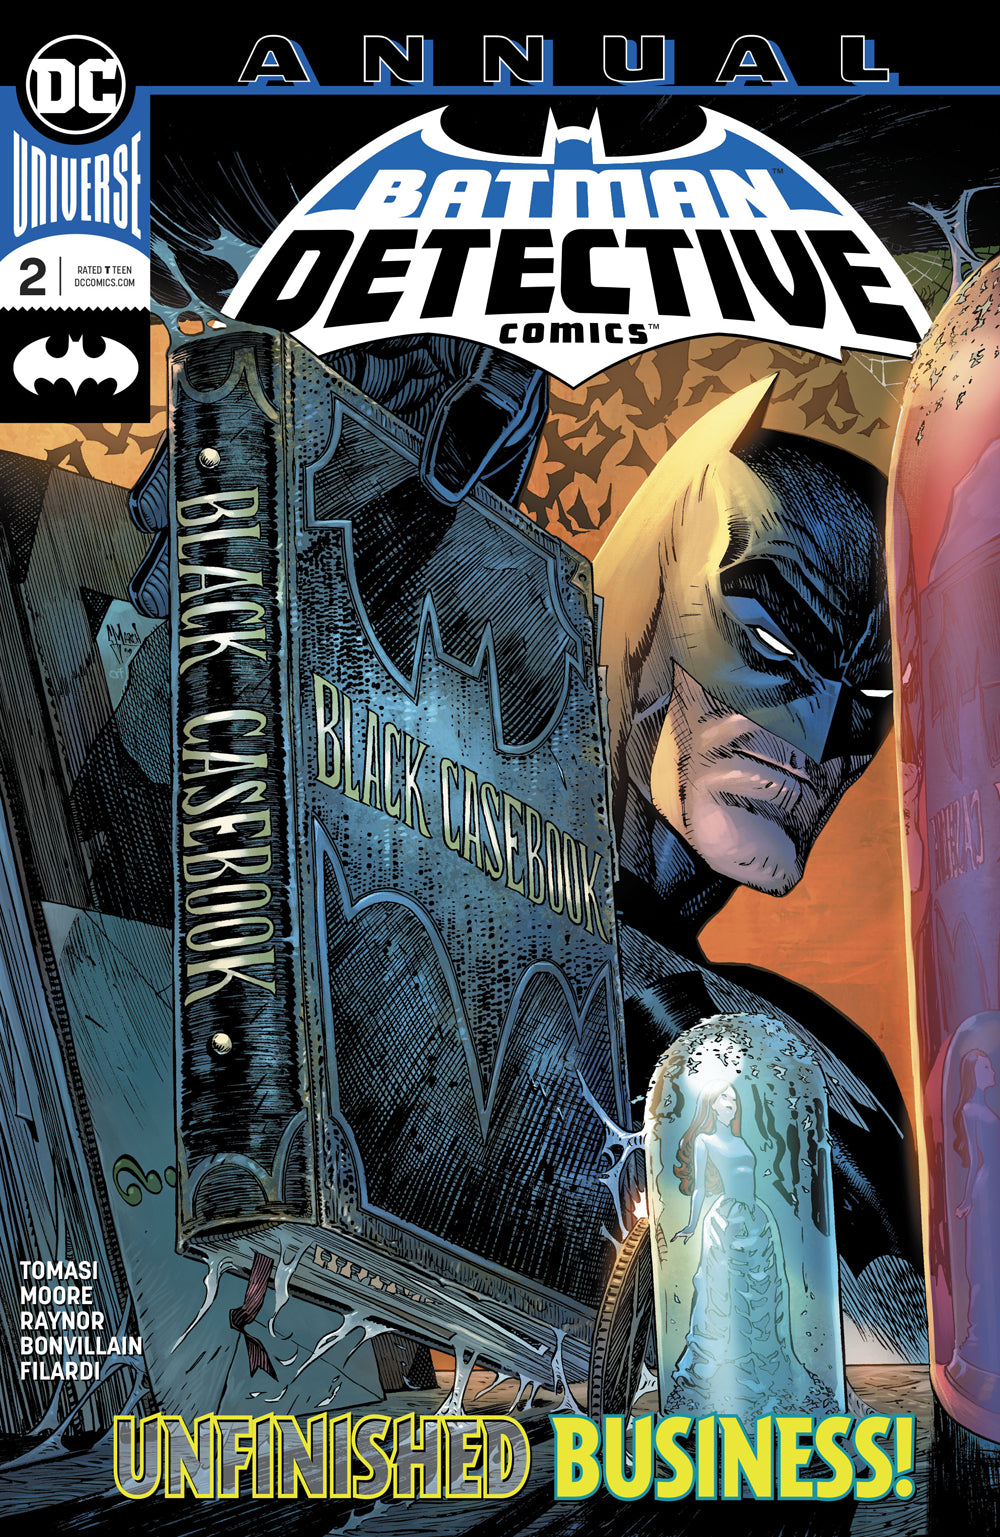 DETECTIVE COMICS ANNUAL #2 | Game Master's Emporium (The New GME)